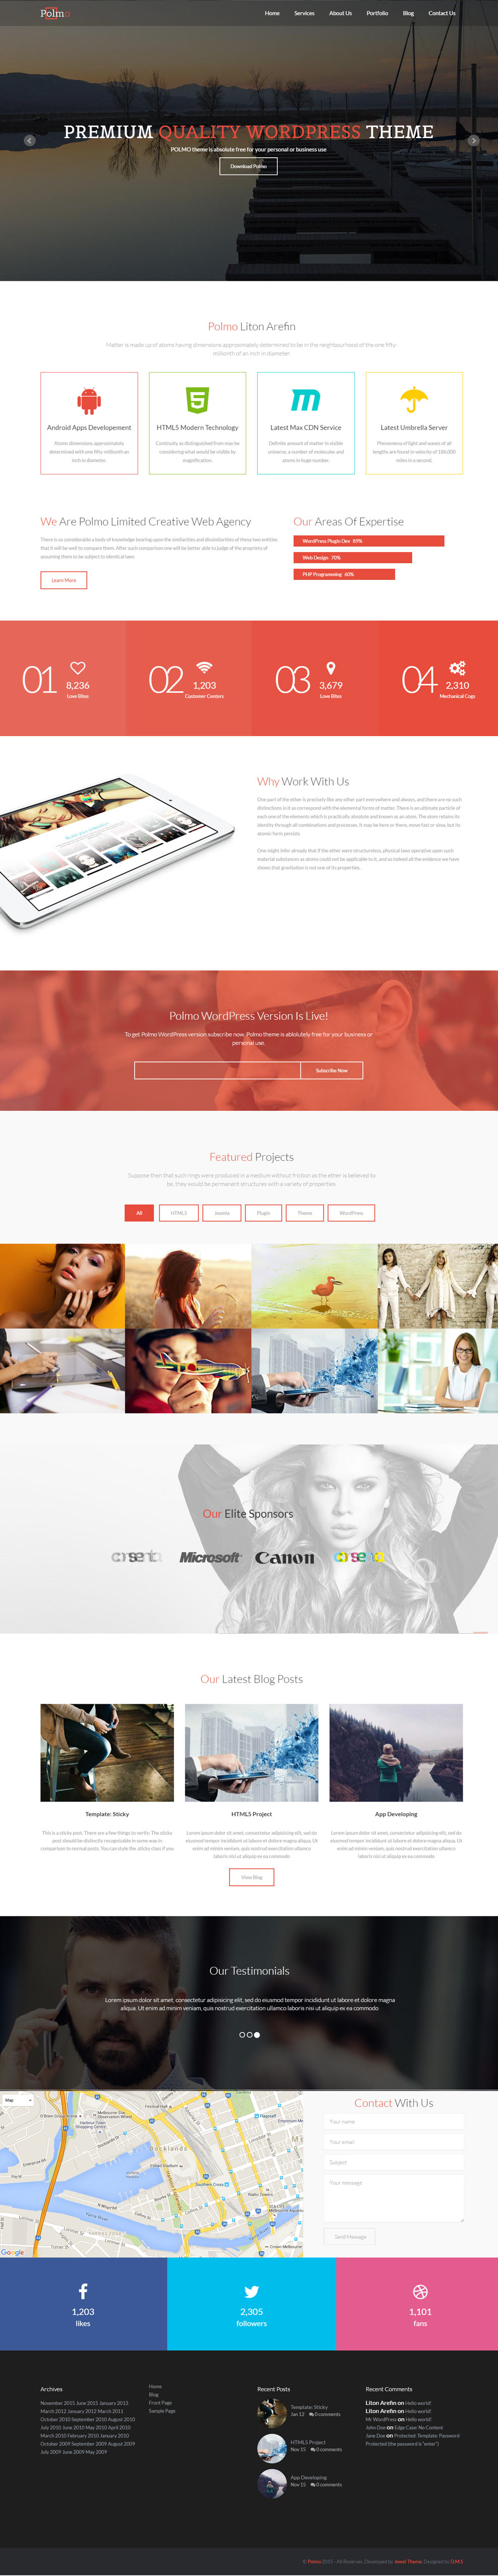 Polmo Free Multipurpose WordPress Theme